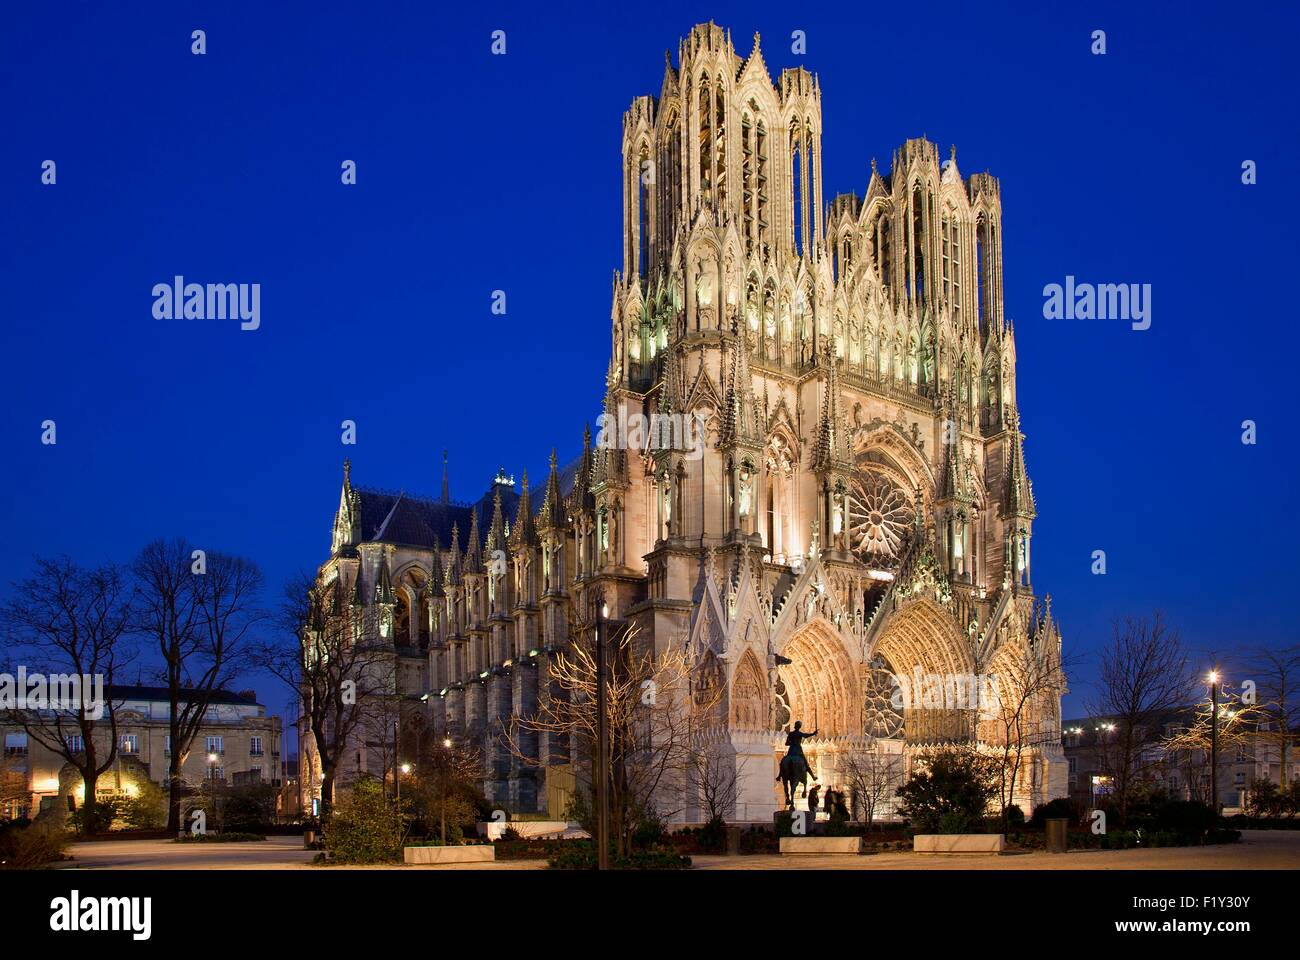 France, Marne, Reims, Notre Dame Cathedral listed as World Heritage by UNESCO - Stock Image